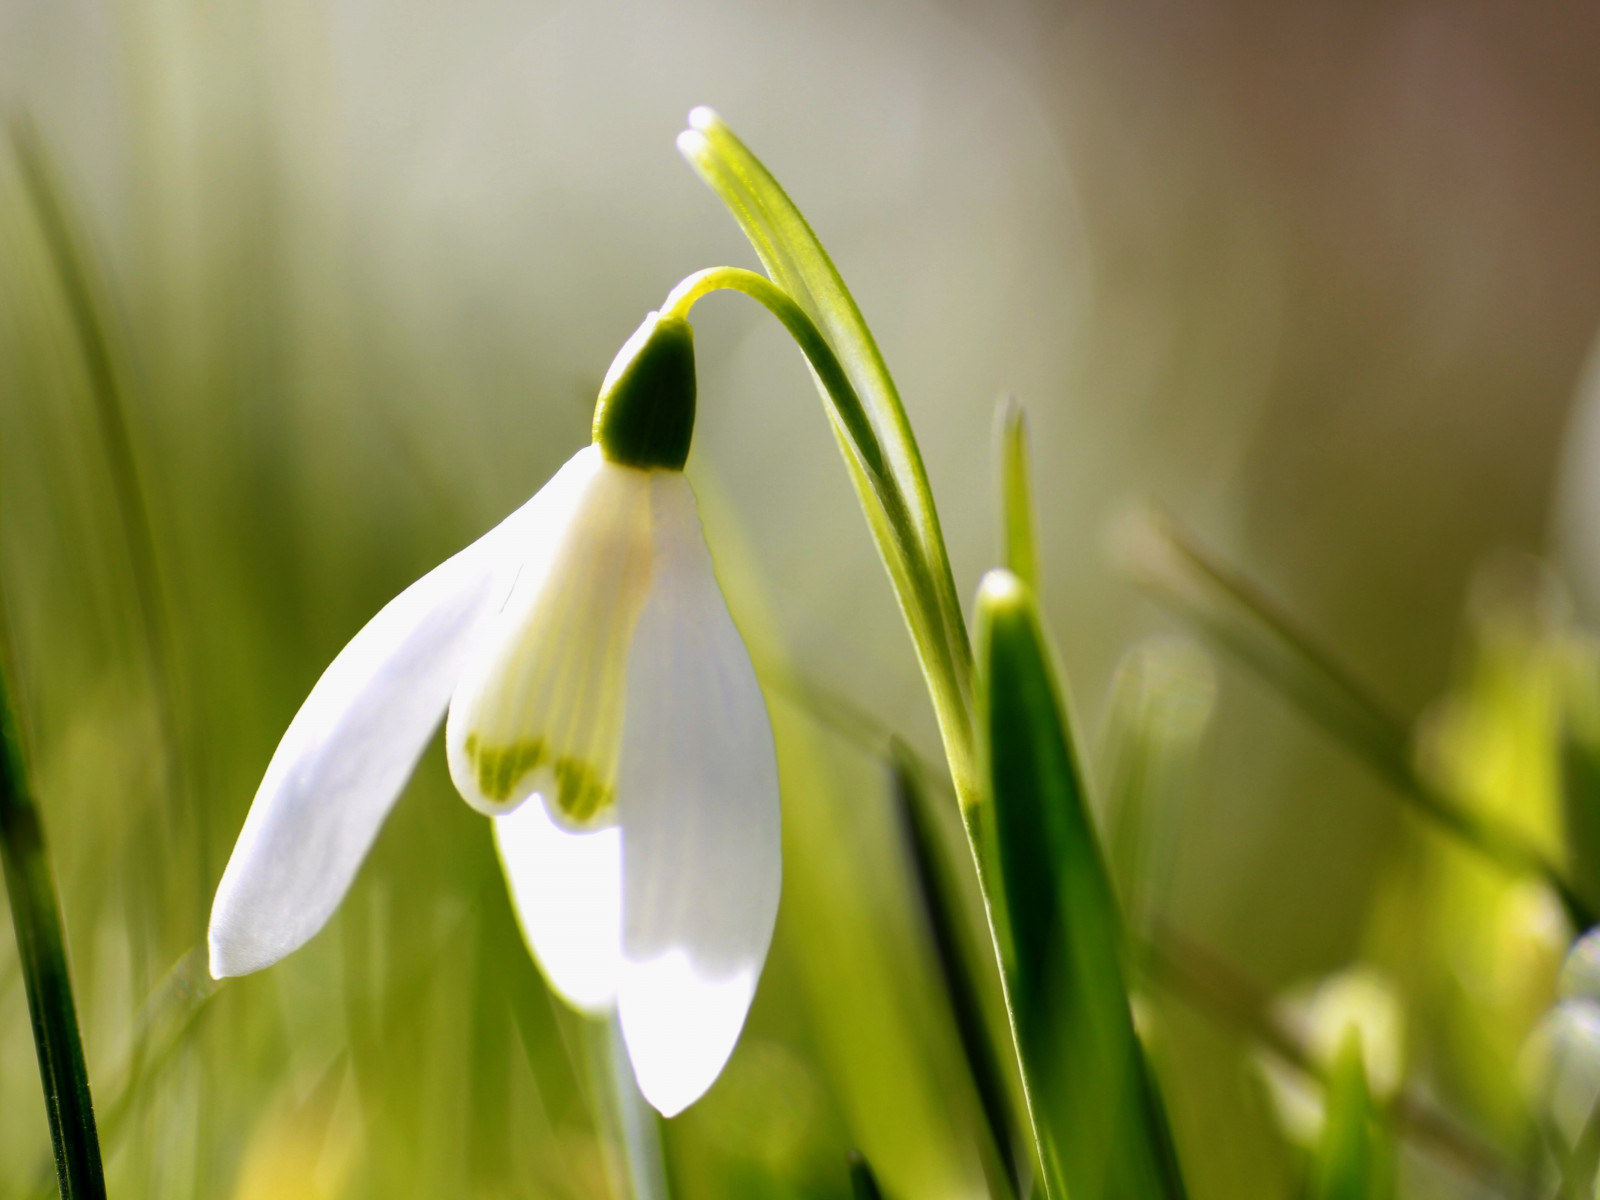 Spring is here. Snowdrop wallpaper 1600x1200